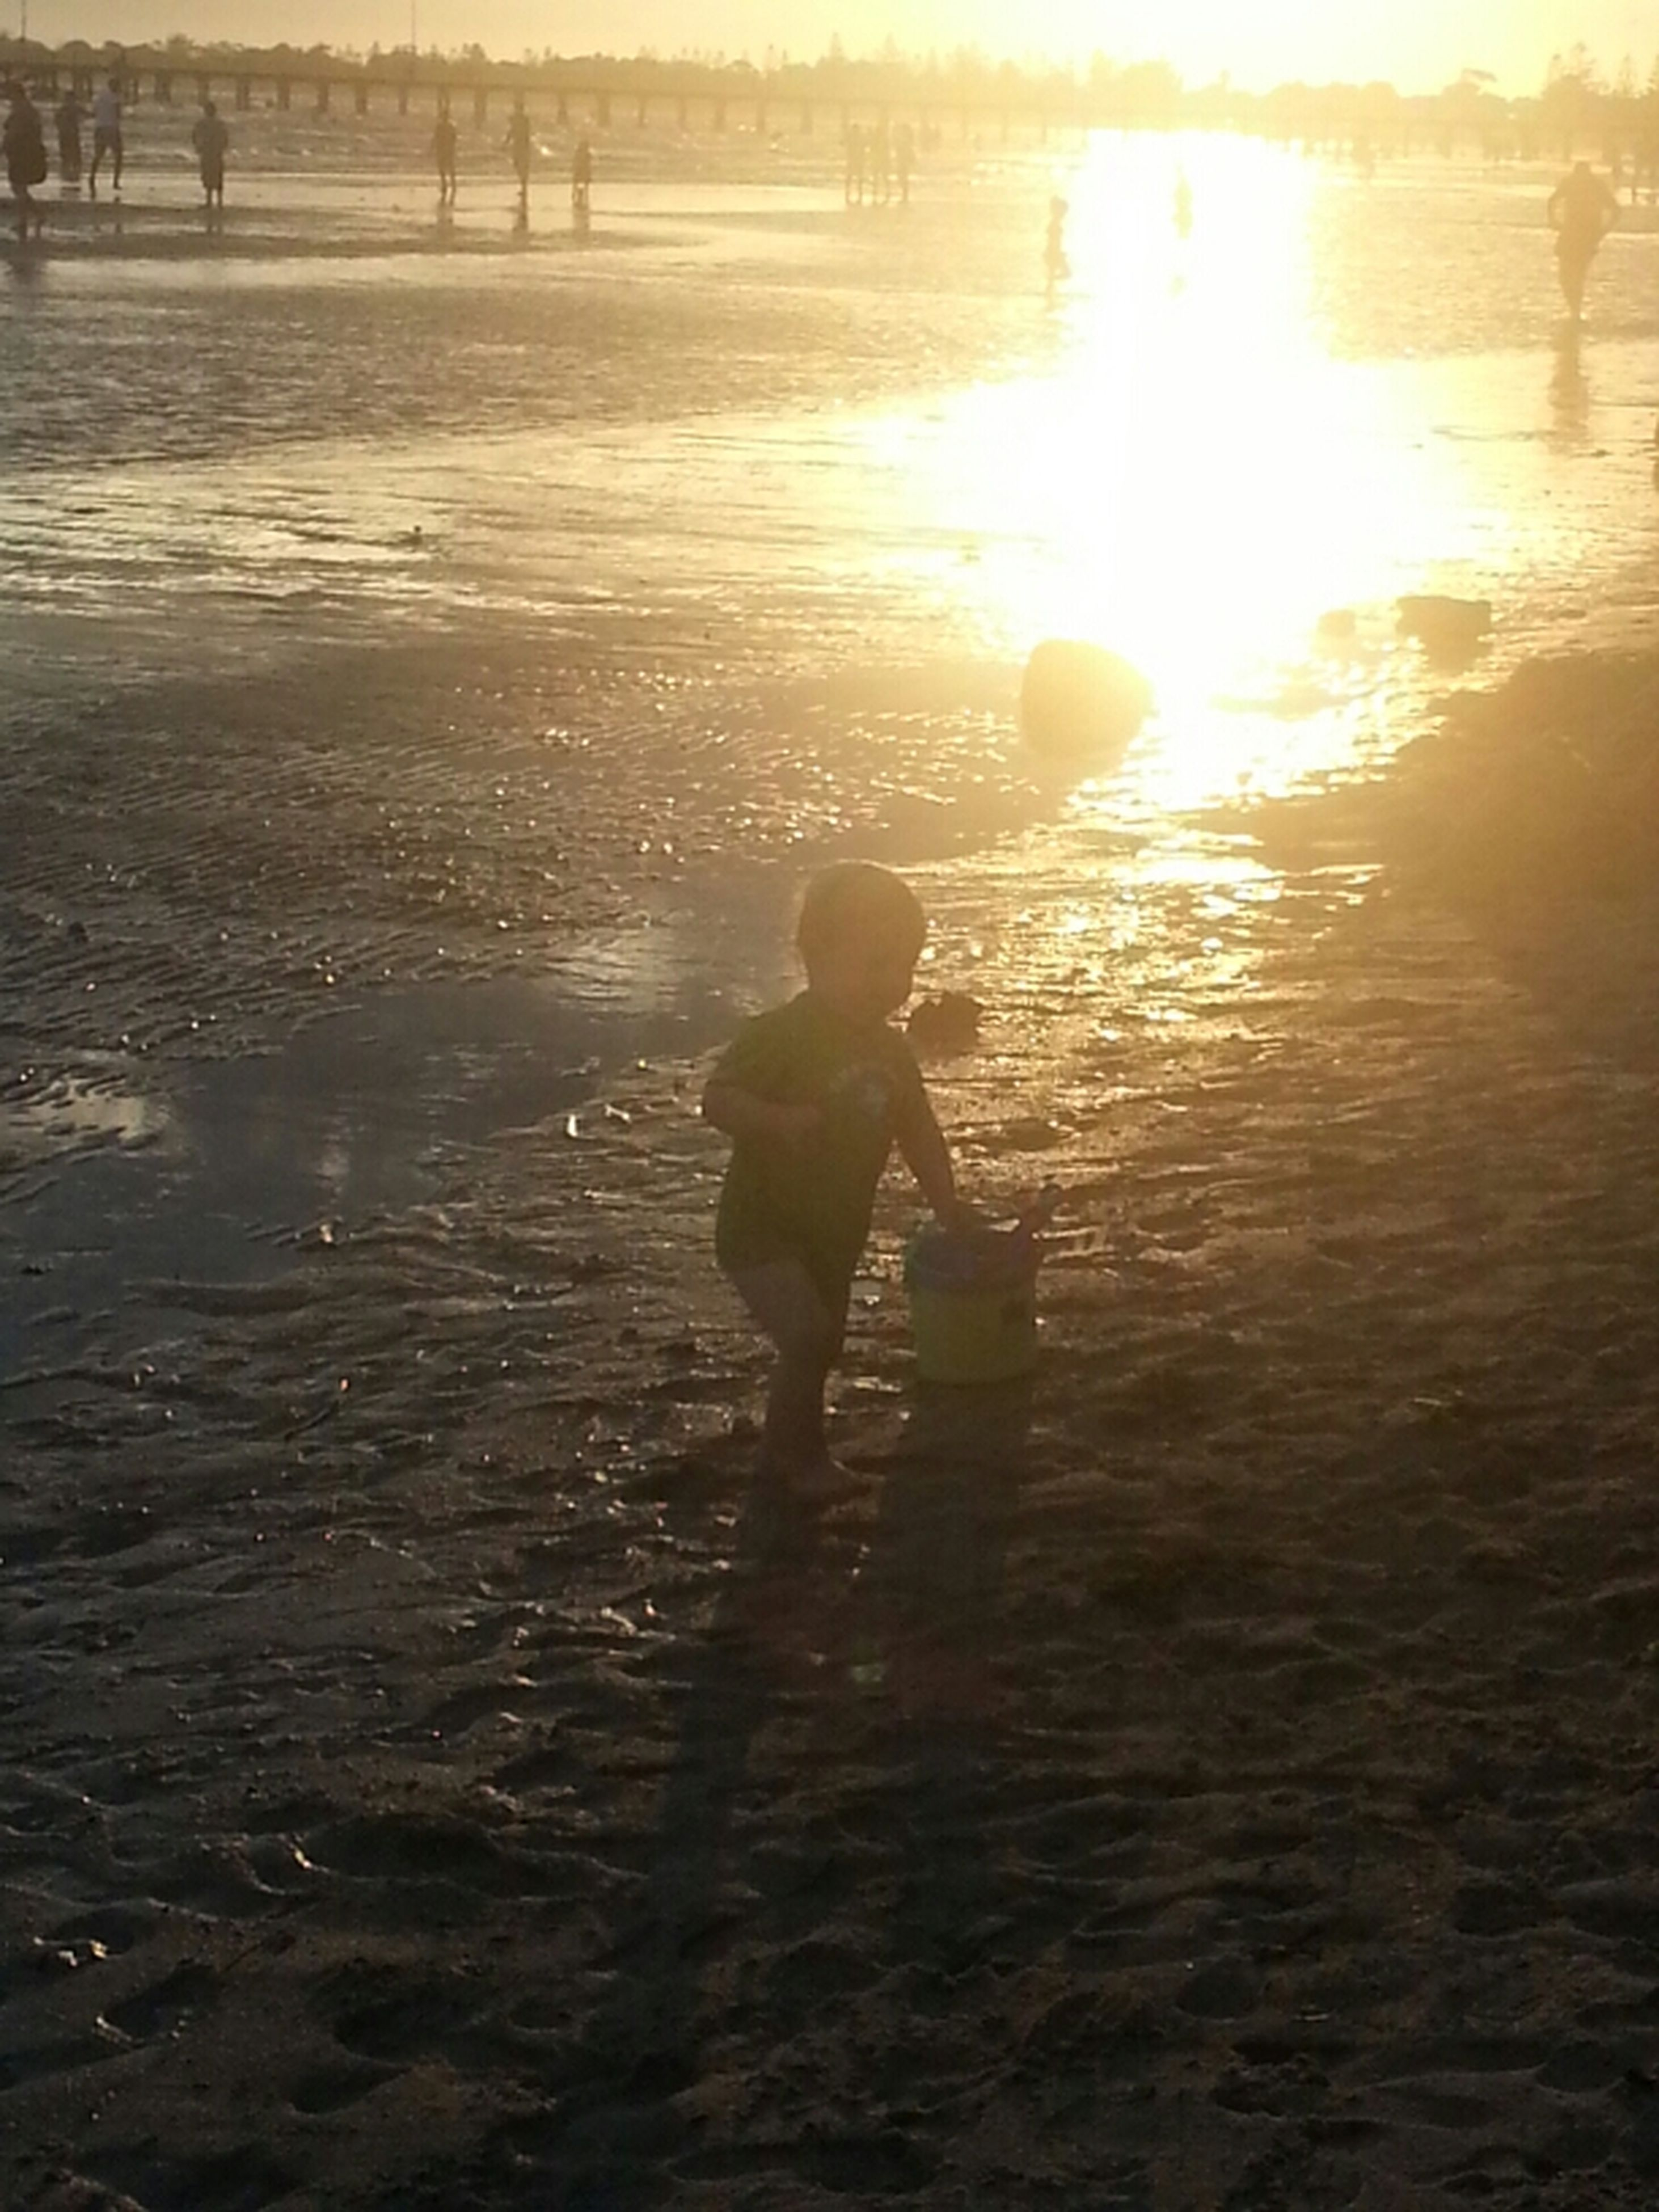 water, lifestyles, leisure activity, sunlight, sun, childhood, reflection, sunset, full length, beach, tranquility, nature, boys, girls, tranquil scene, beauty in nature, sea, standing